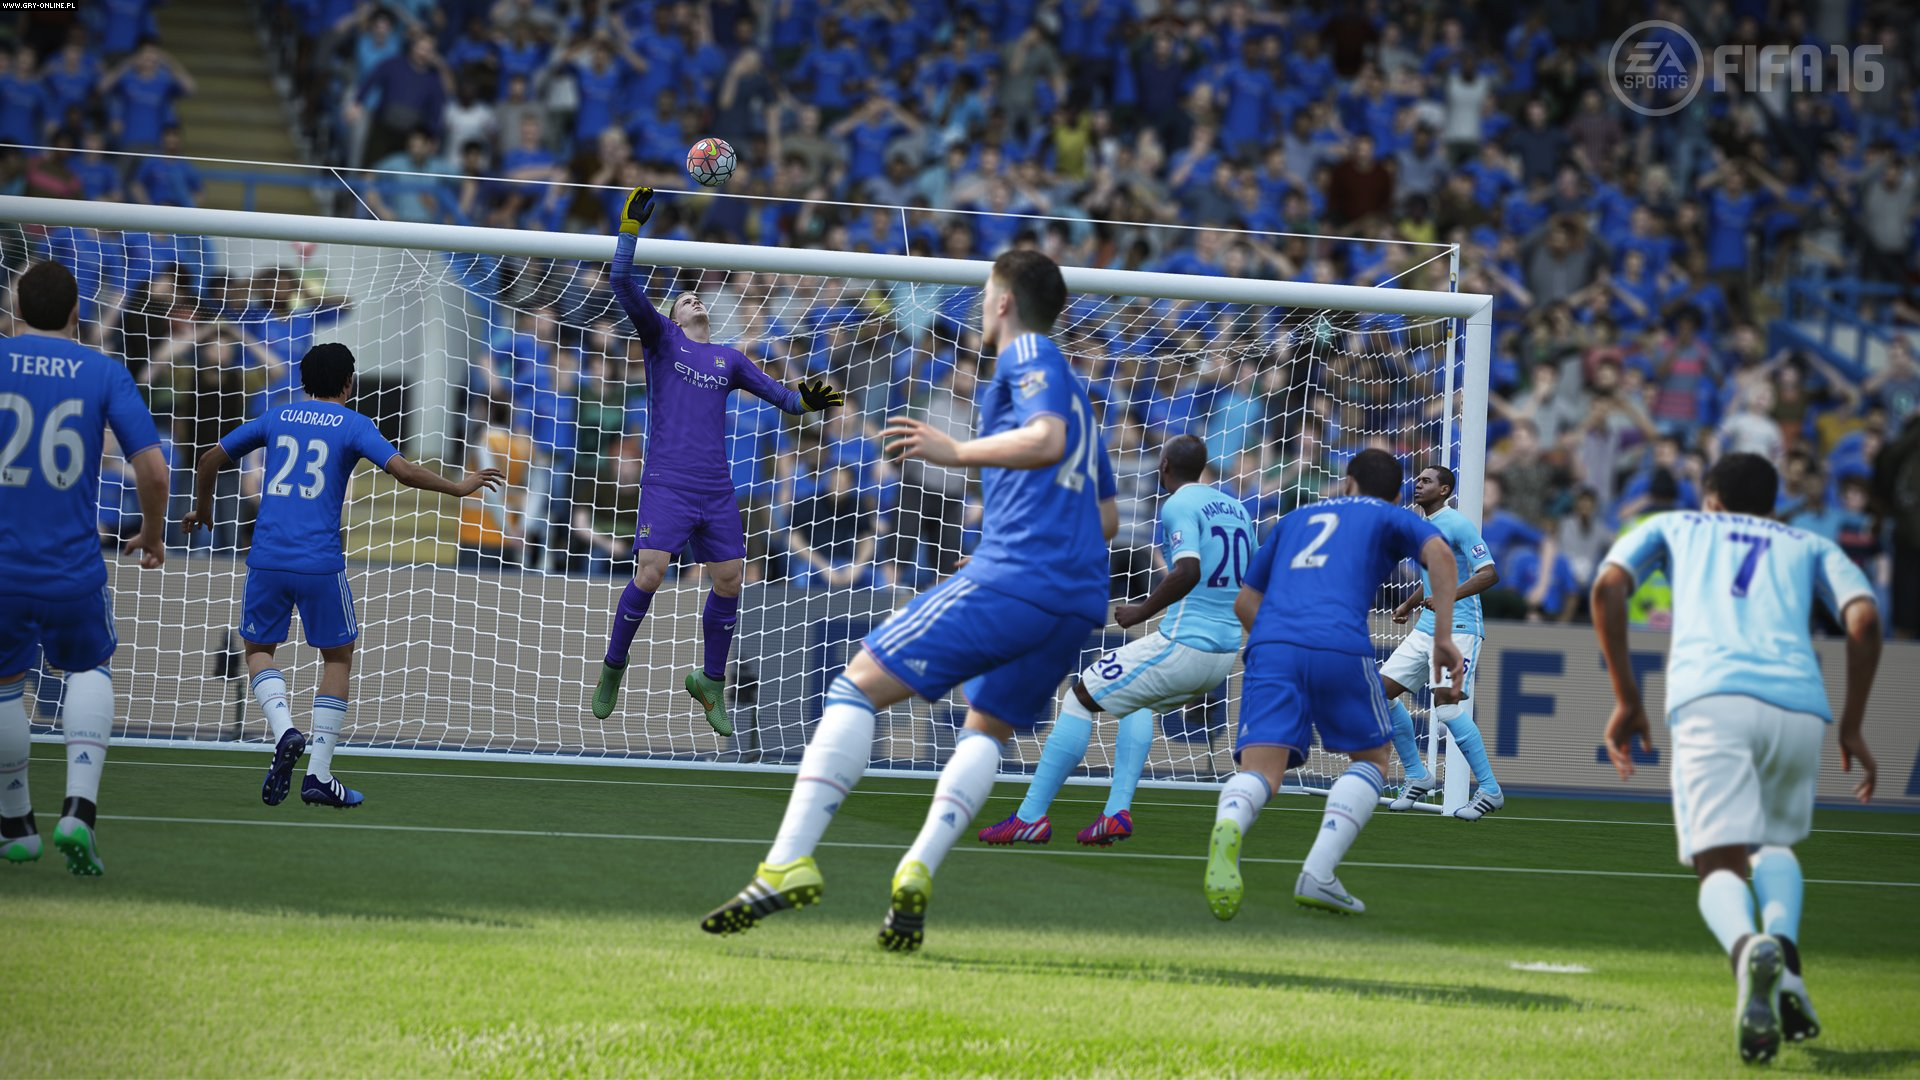 FIFA 16 PC, PS4, XONE Gry Screen 5/21, EA Sports, Electronic Arts Inc.